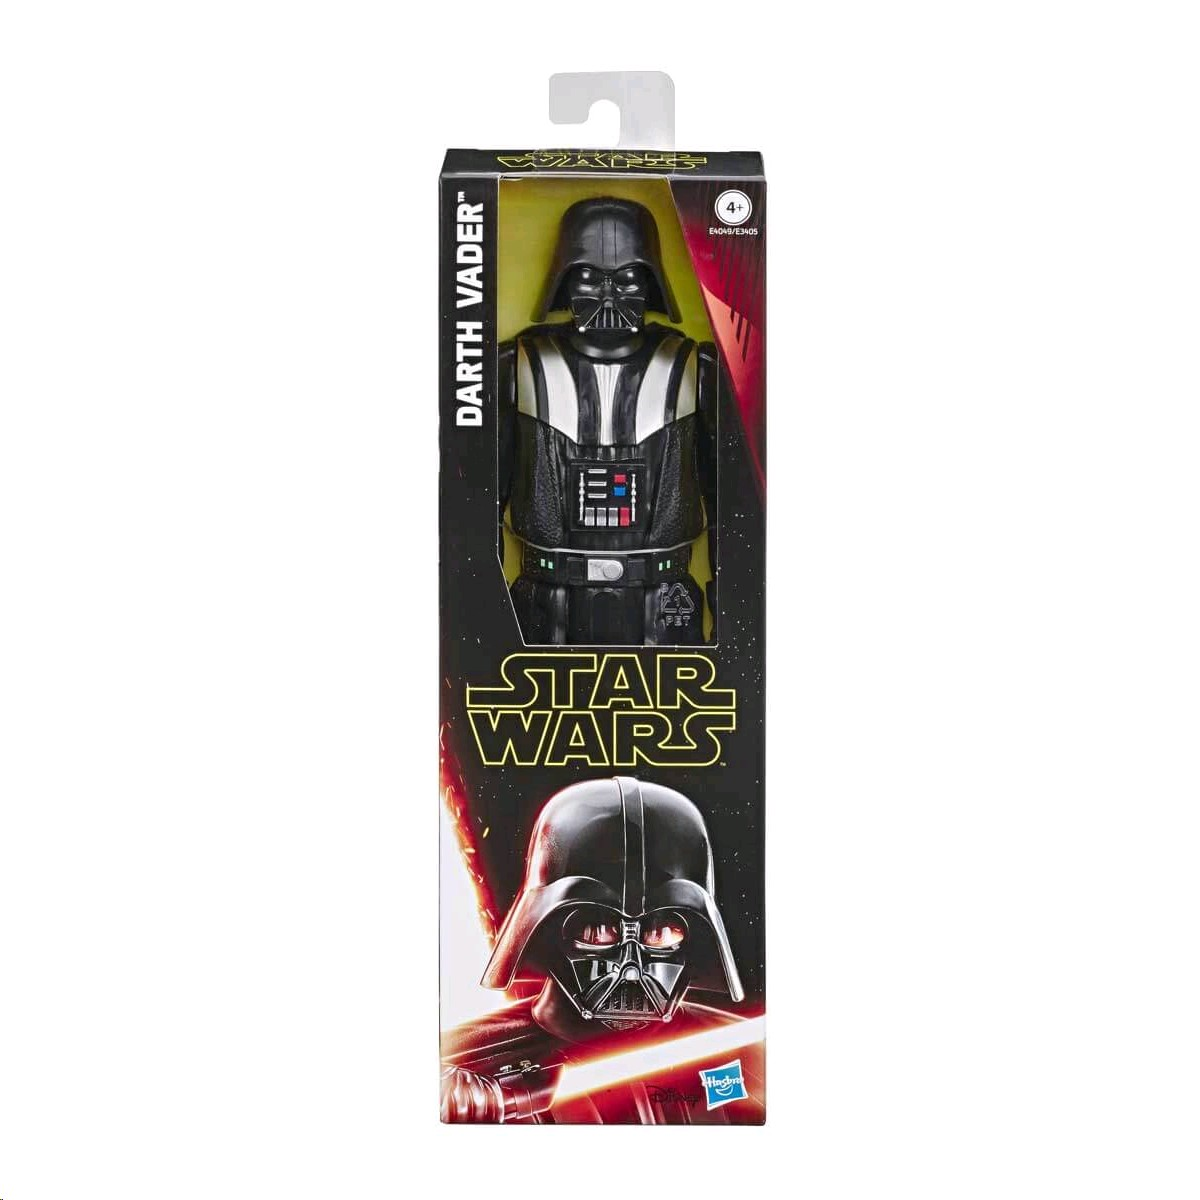 star-wars-hero-series-dev-figur-e3405